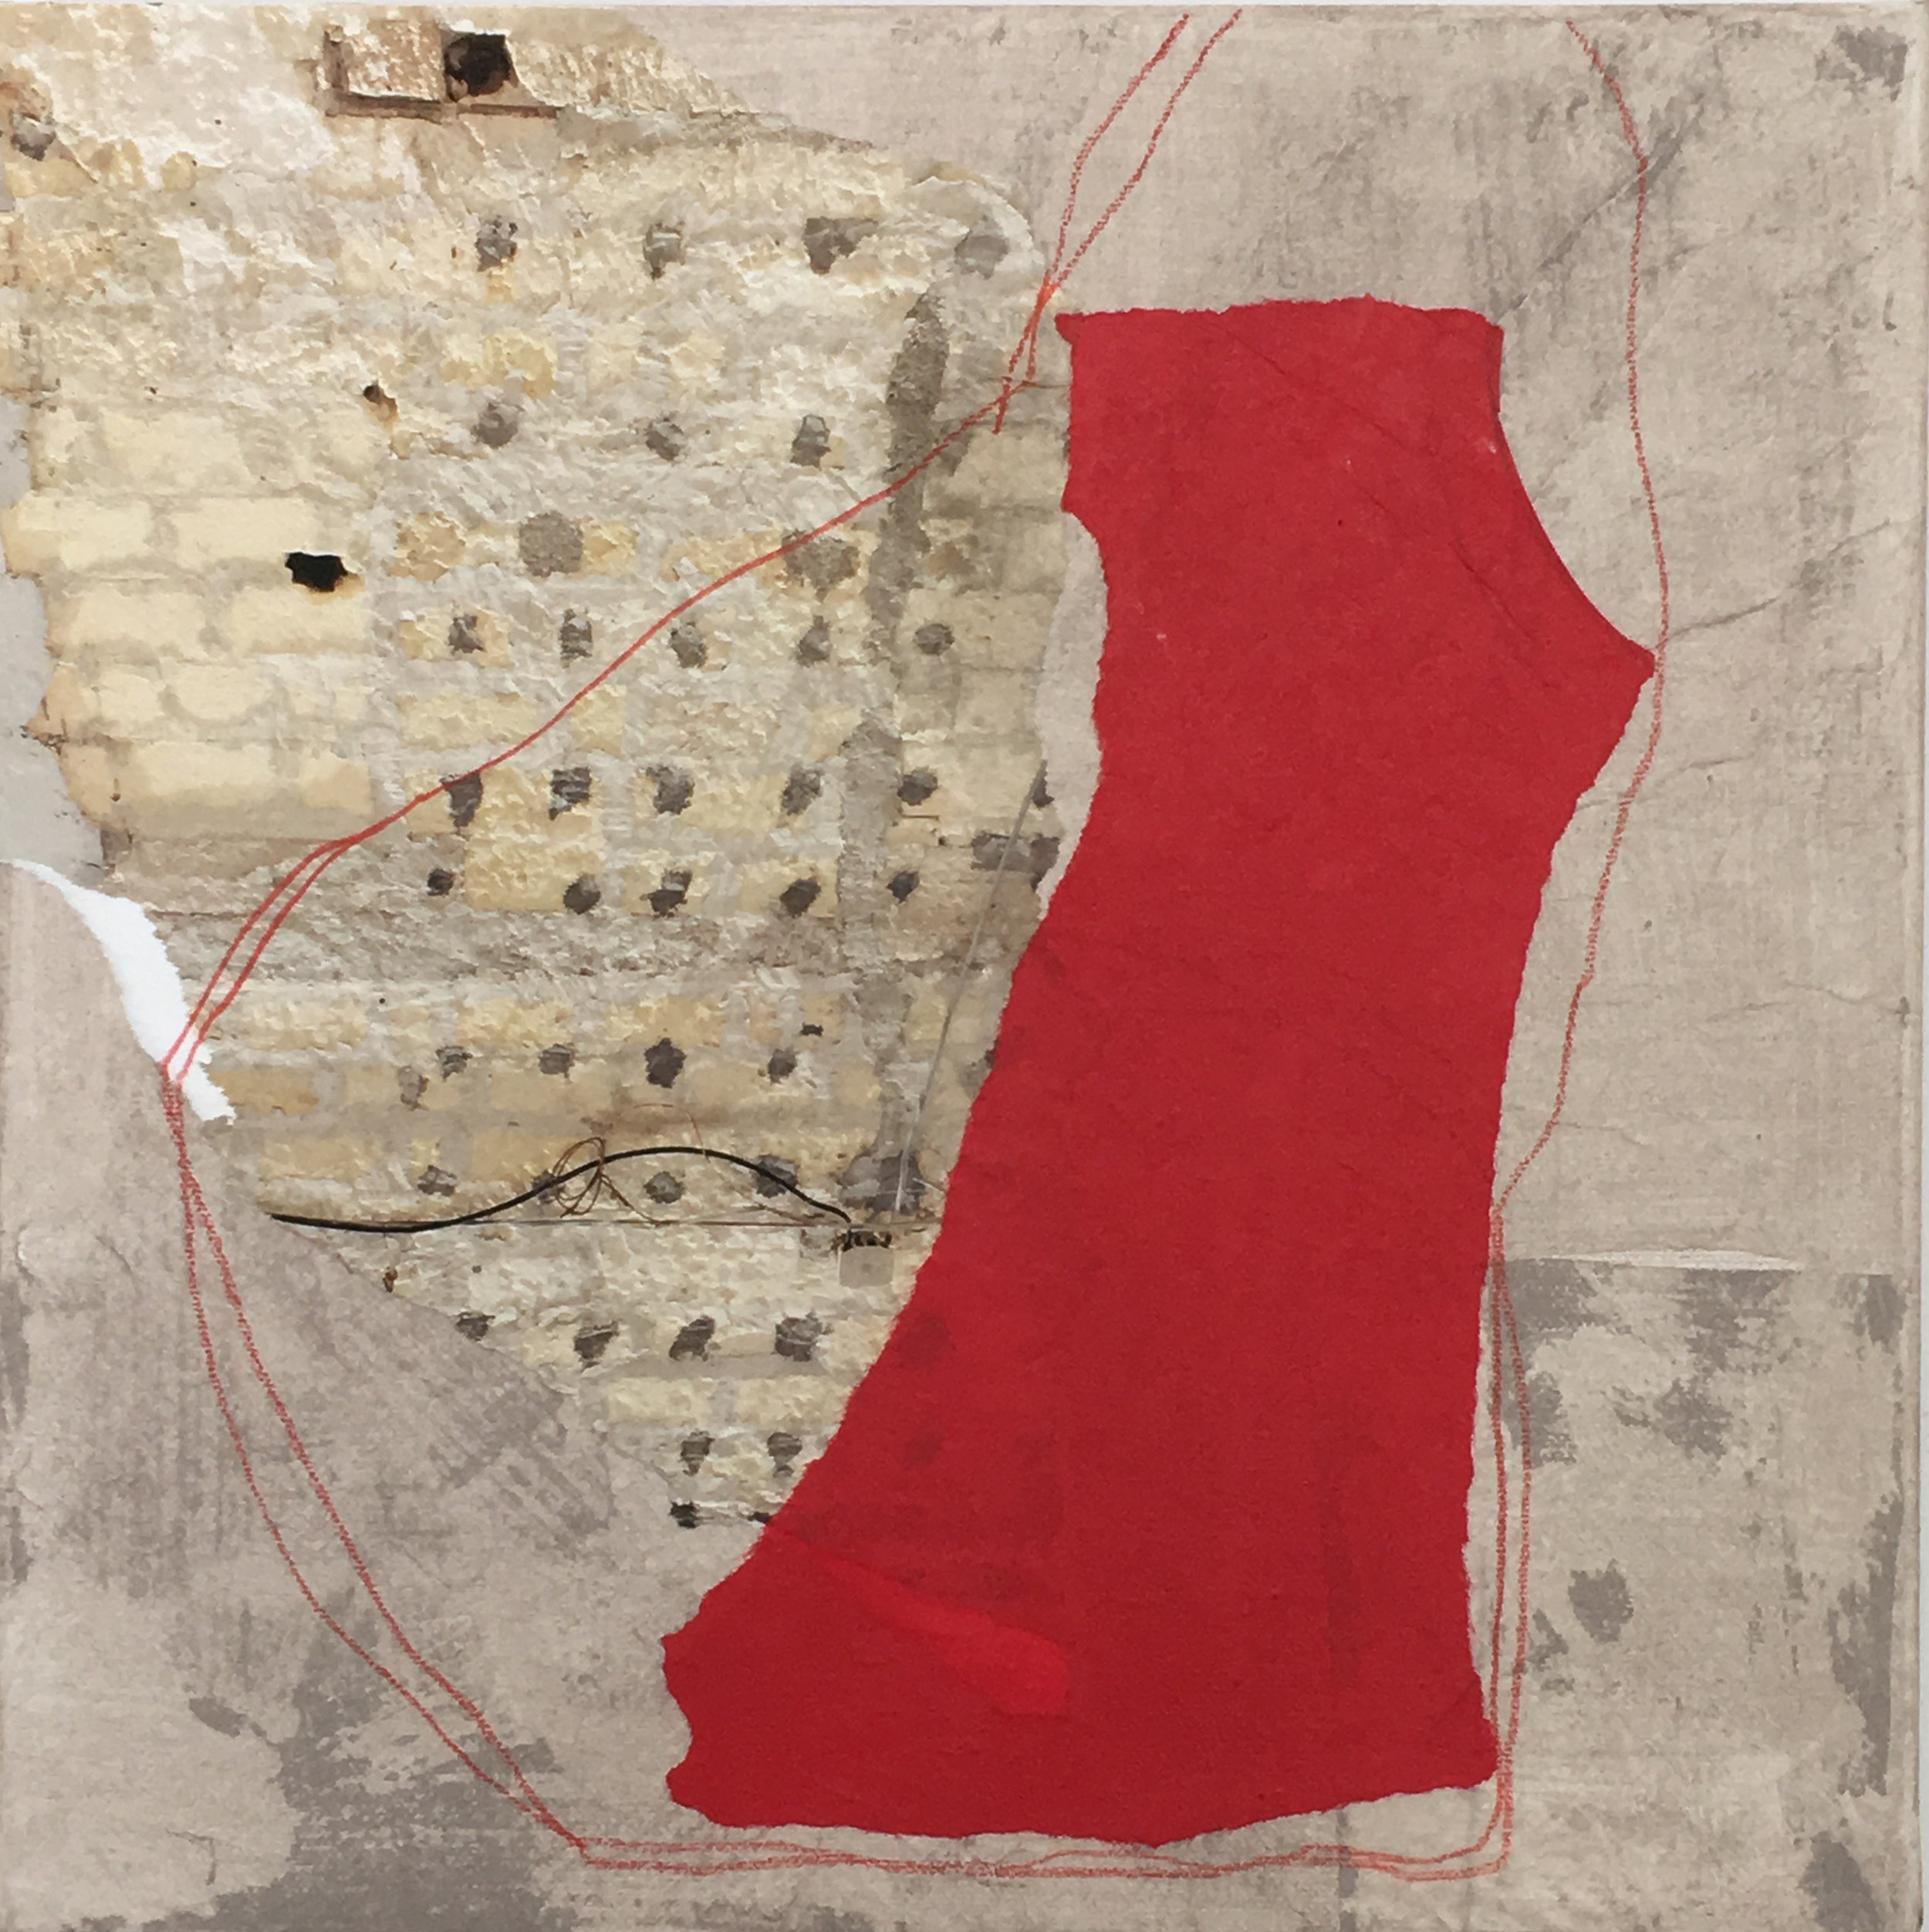 Red Form and Photo on Taupe, 2018, mixed media on canvas, 12 x 12 in, $650